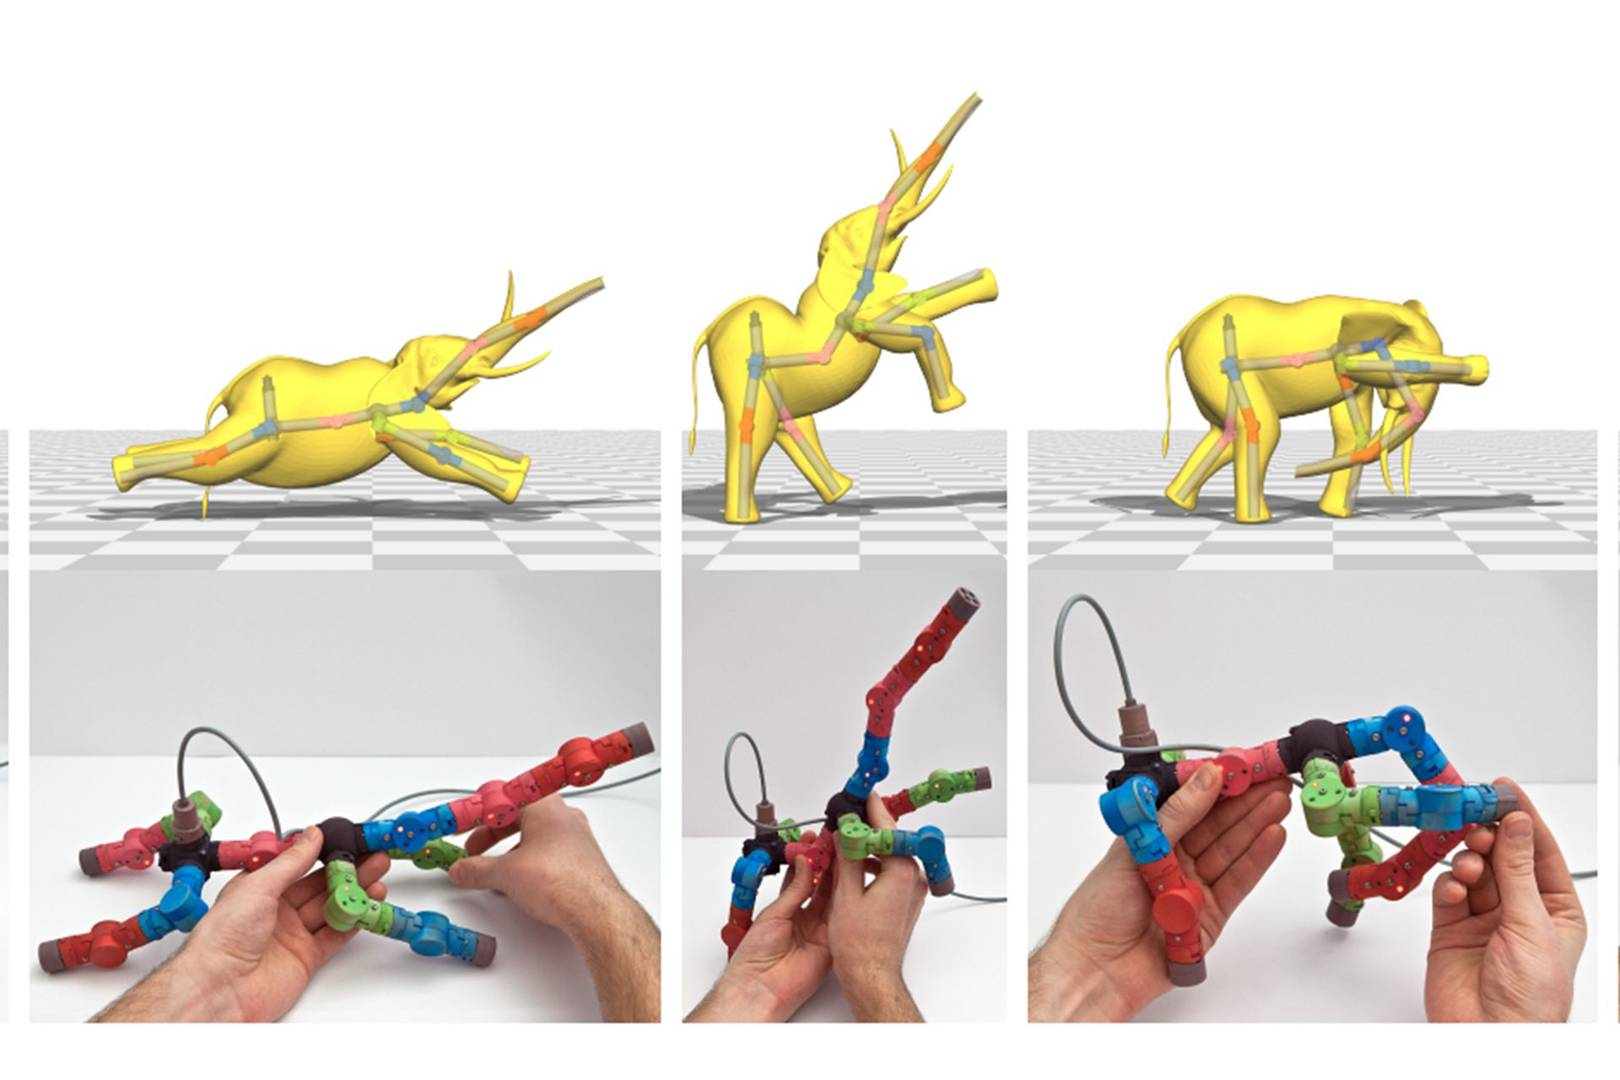 Animate Digital Creatures With This Pliable Modular Doll Wired Uk Series Circuit 3d Animated Model